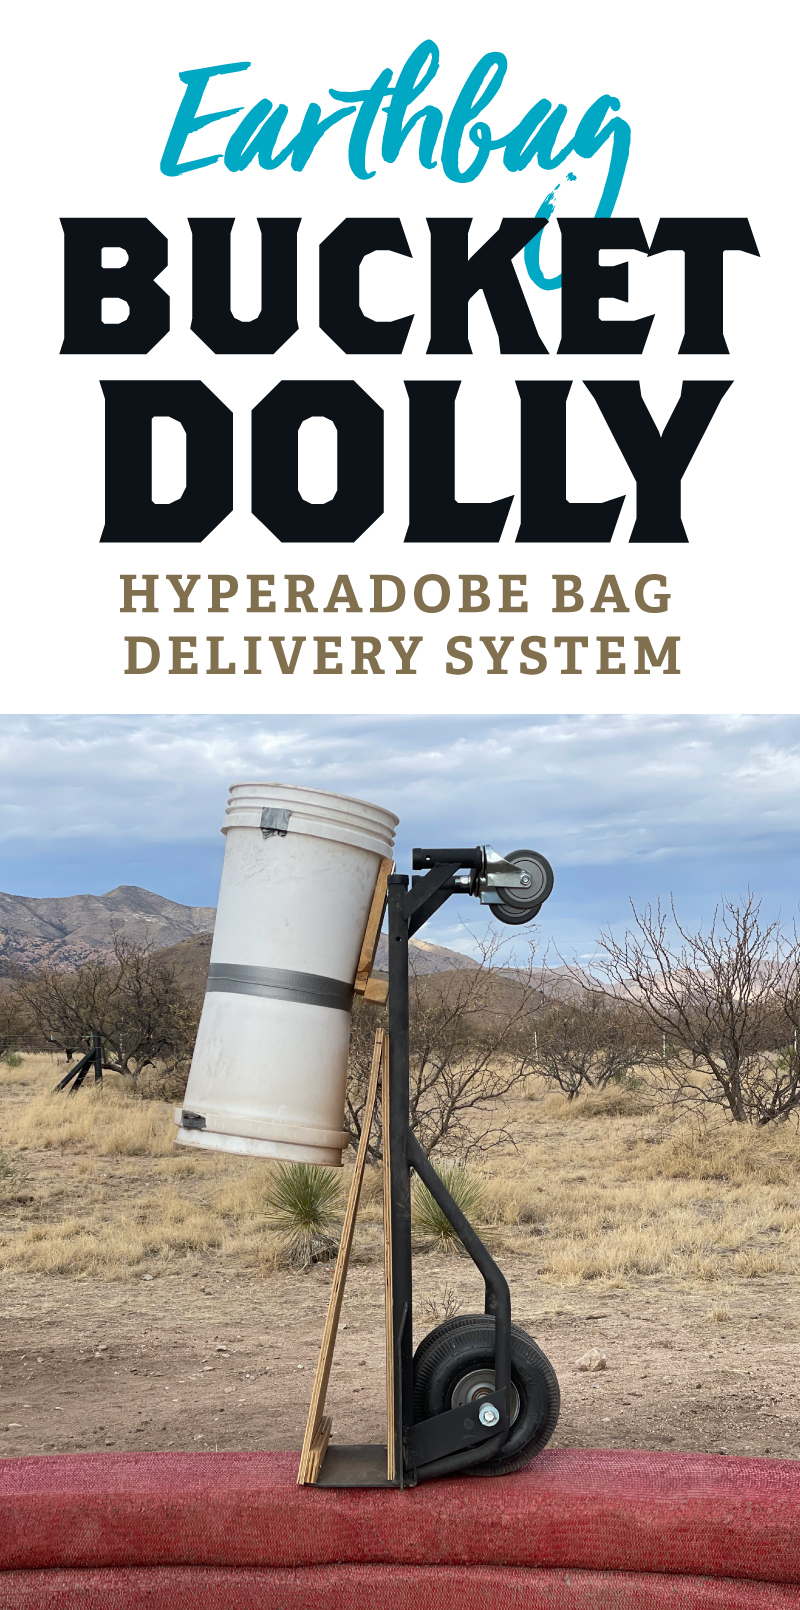 Earthbag Bucket Dolly - Hyperadobe bag delivery system